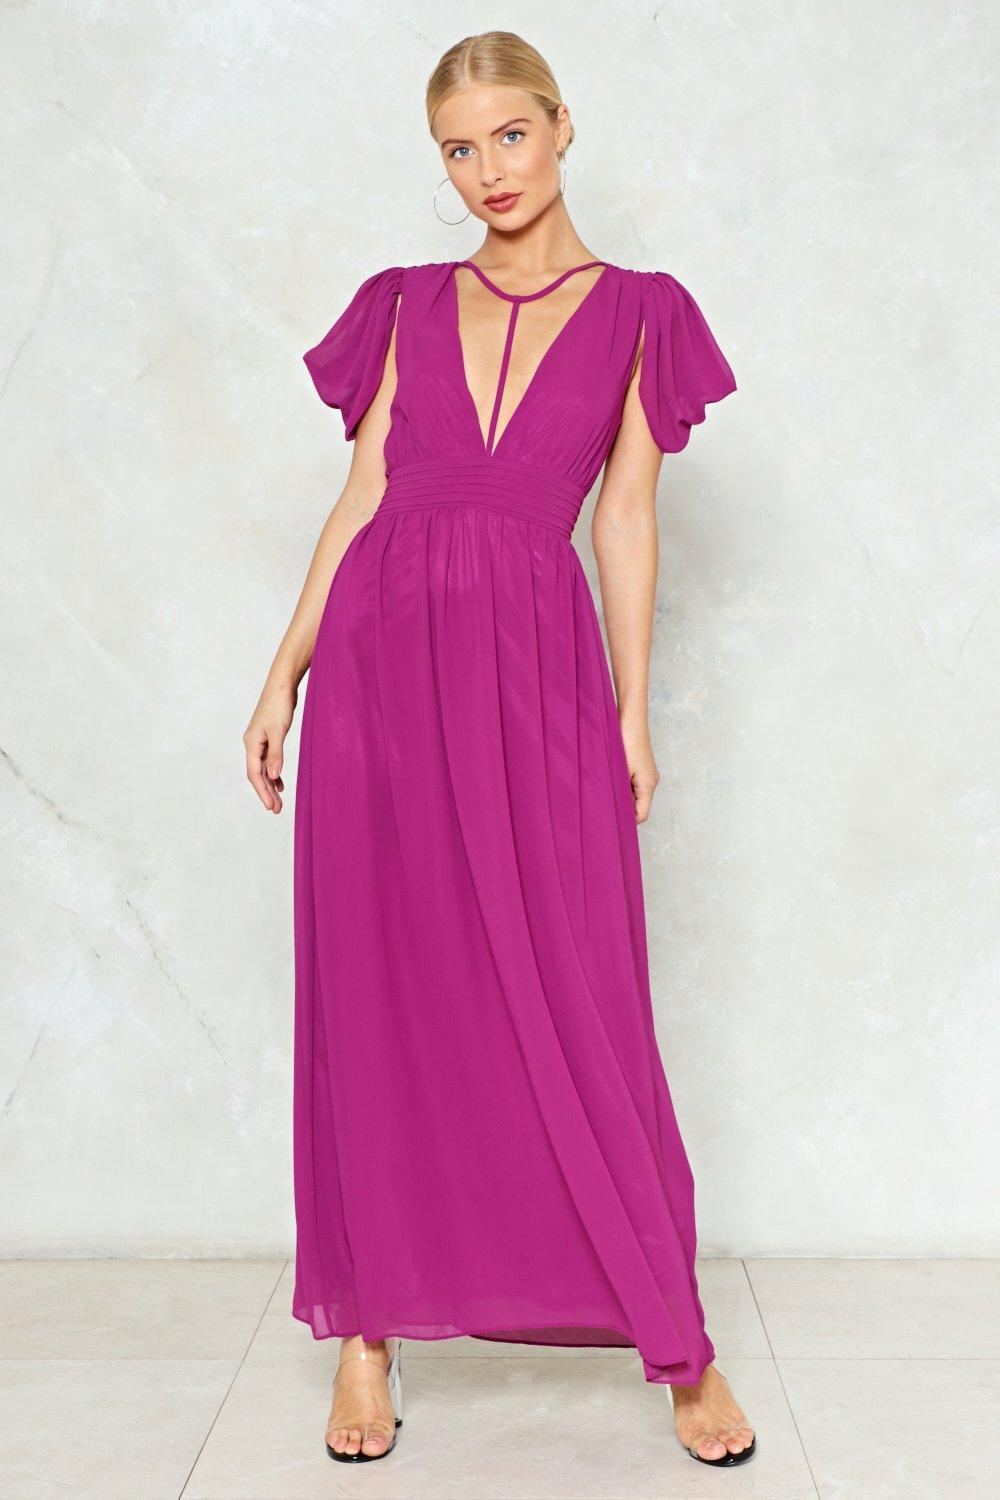 Harness Your Talents Maxi Dress